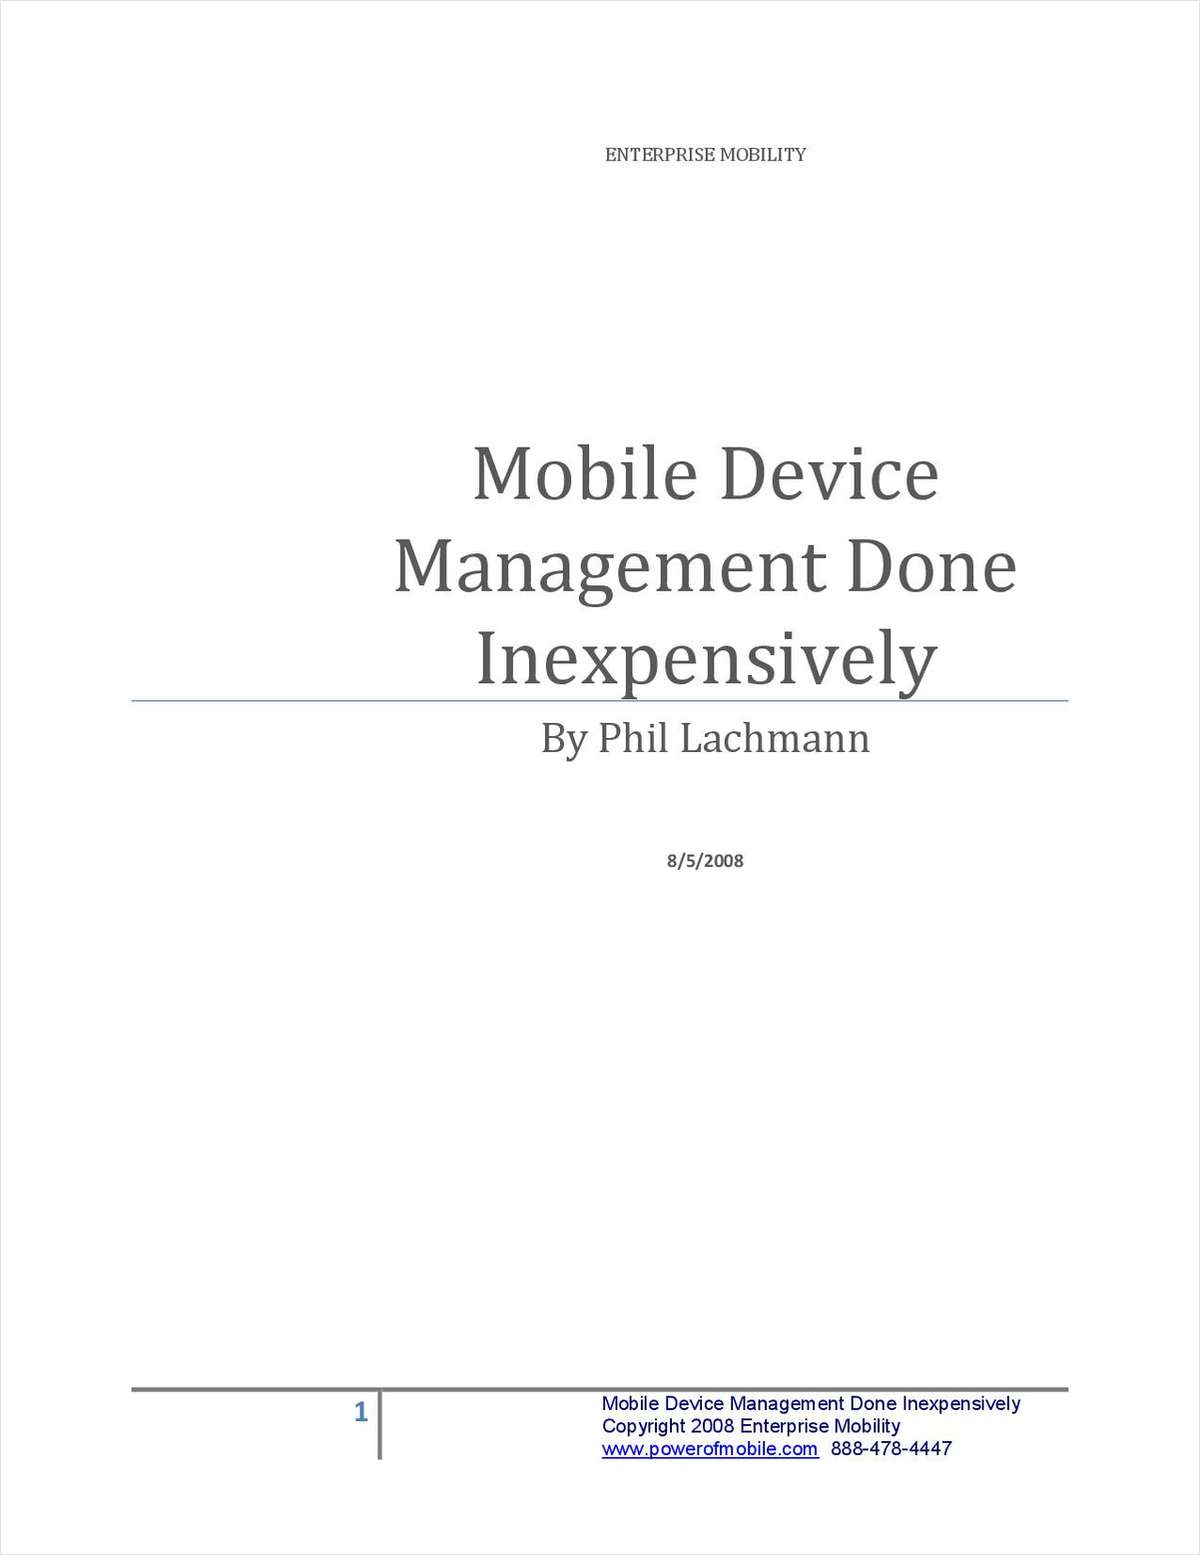 Mobile Device Management Done Inexpensively